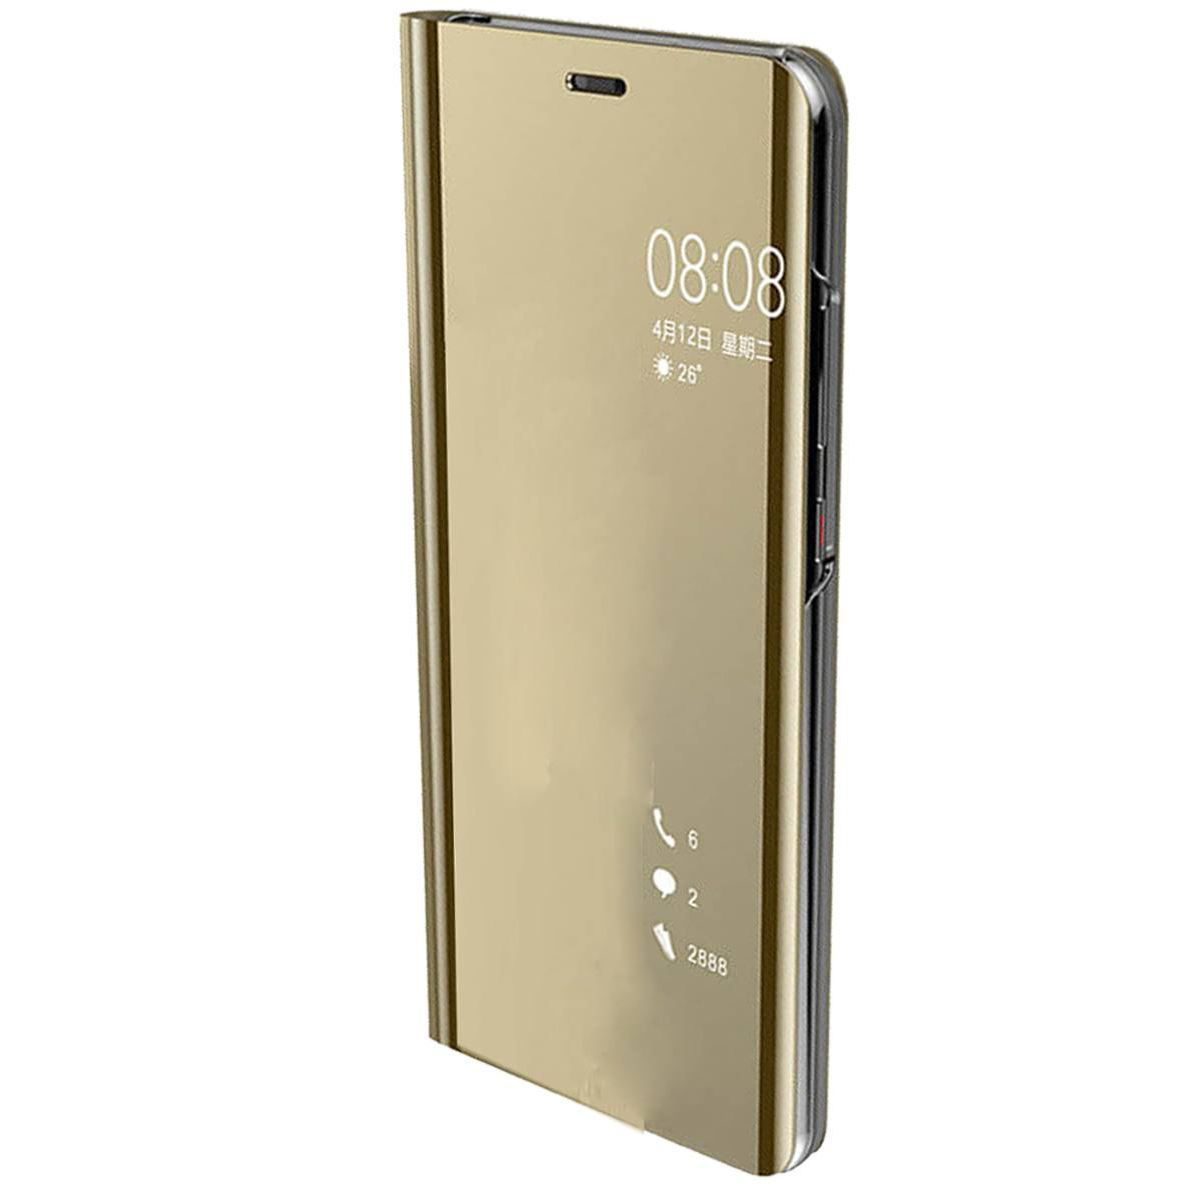 Huawei P10 Lite Case Smart View Mirror Flip Stand Cover - Gold